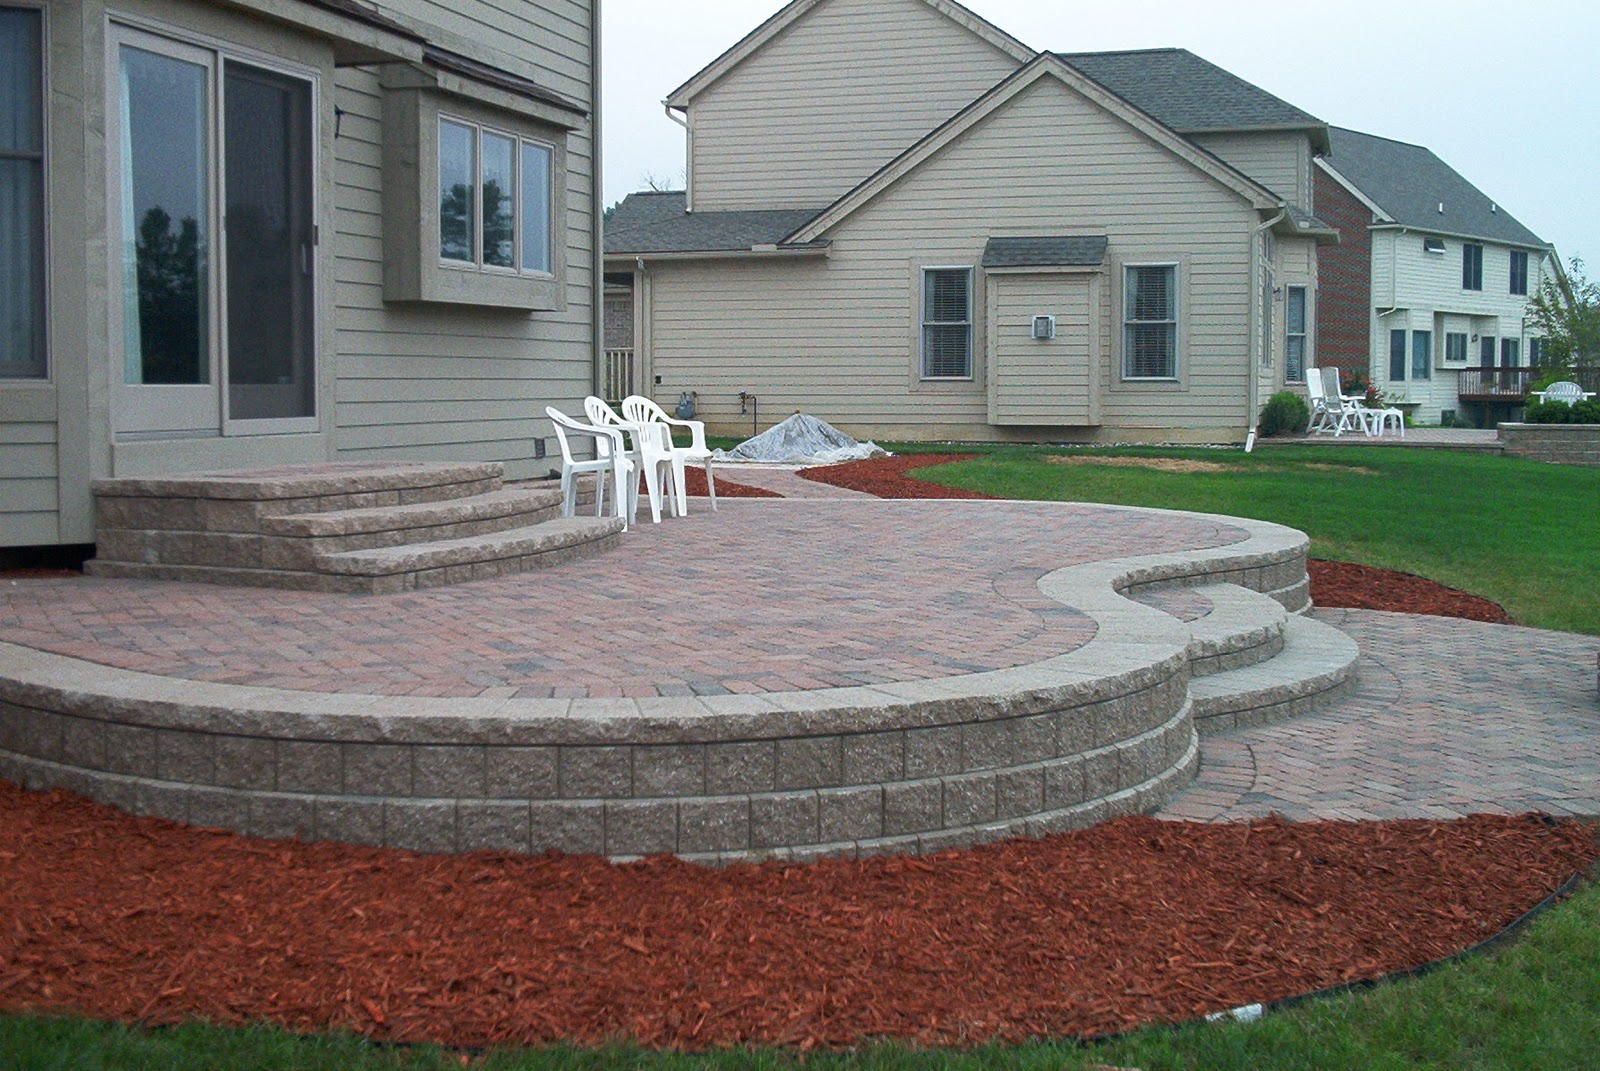 Paver Patio Installations, Repair, Cleaning, And Sealing Is On The